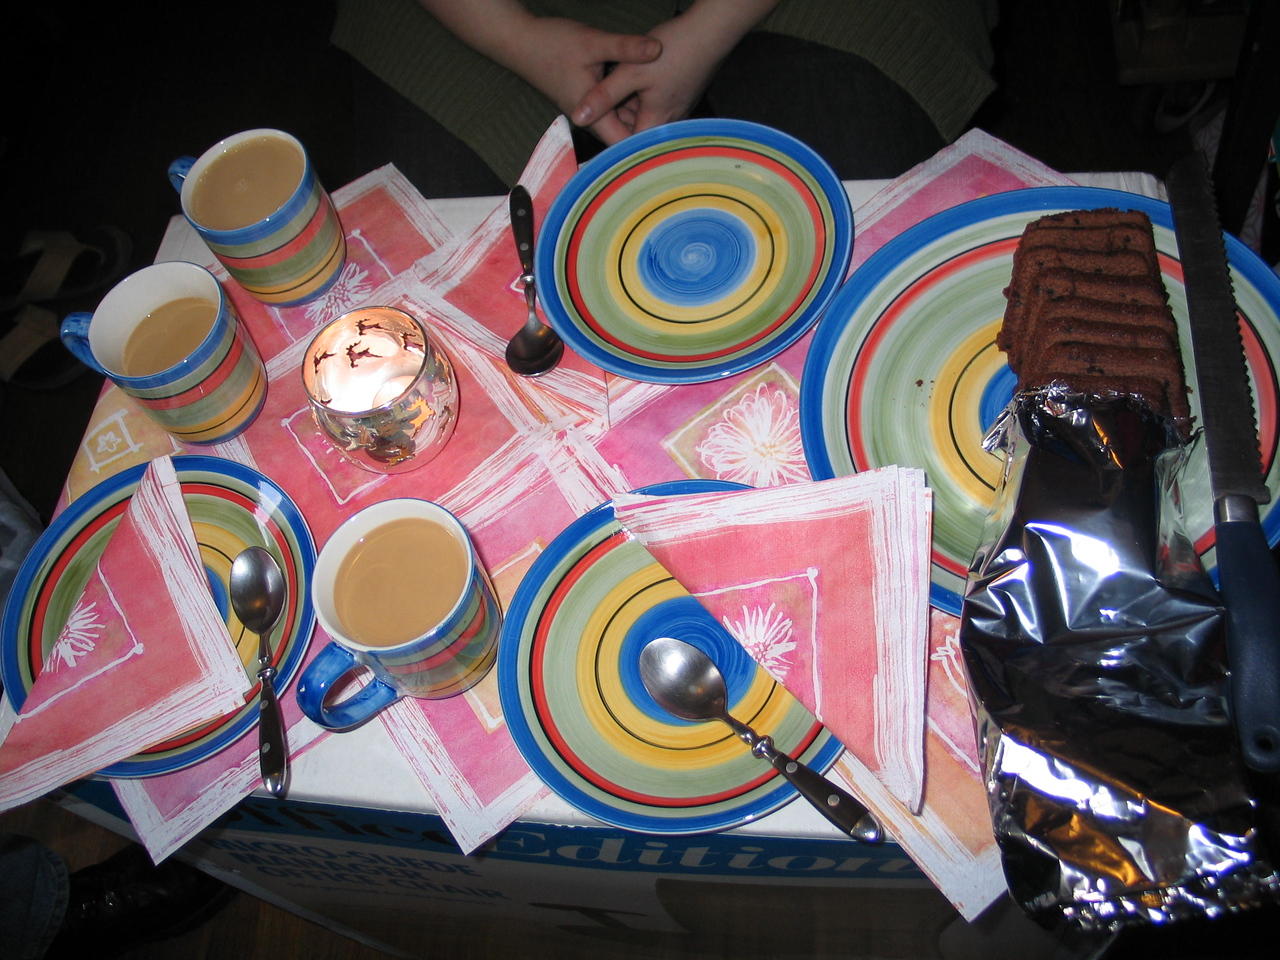 Coffee and cake time at Sandra's place on makeshift table for 3.